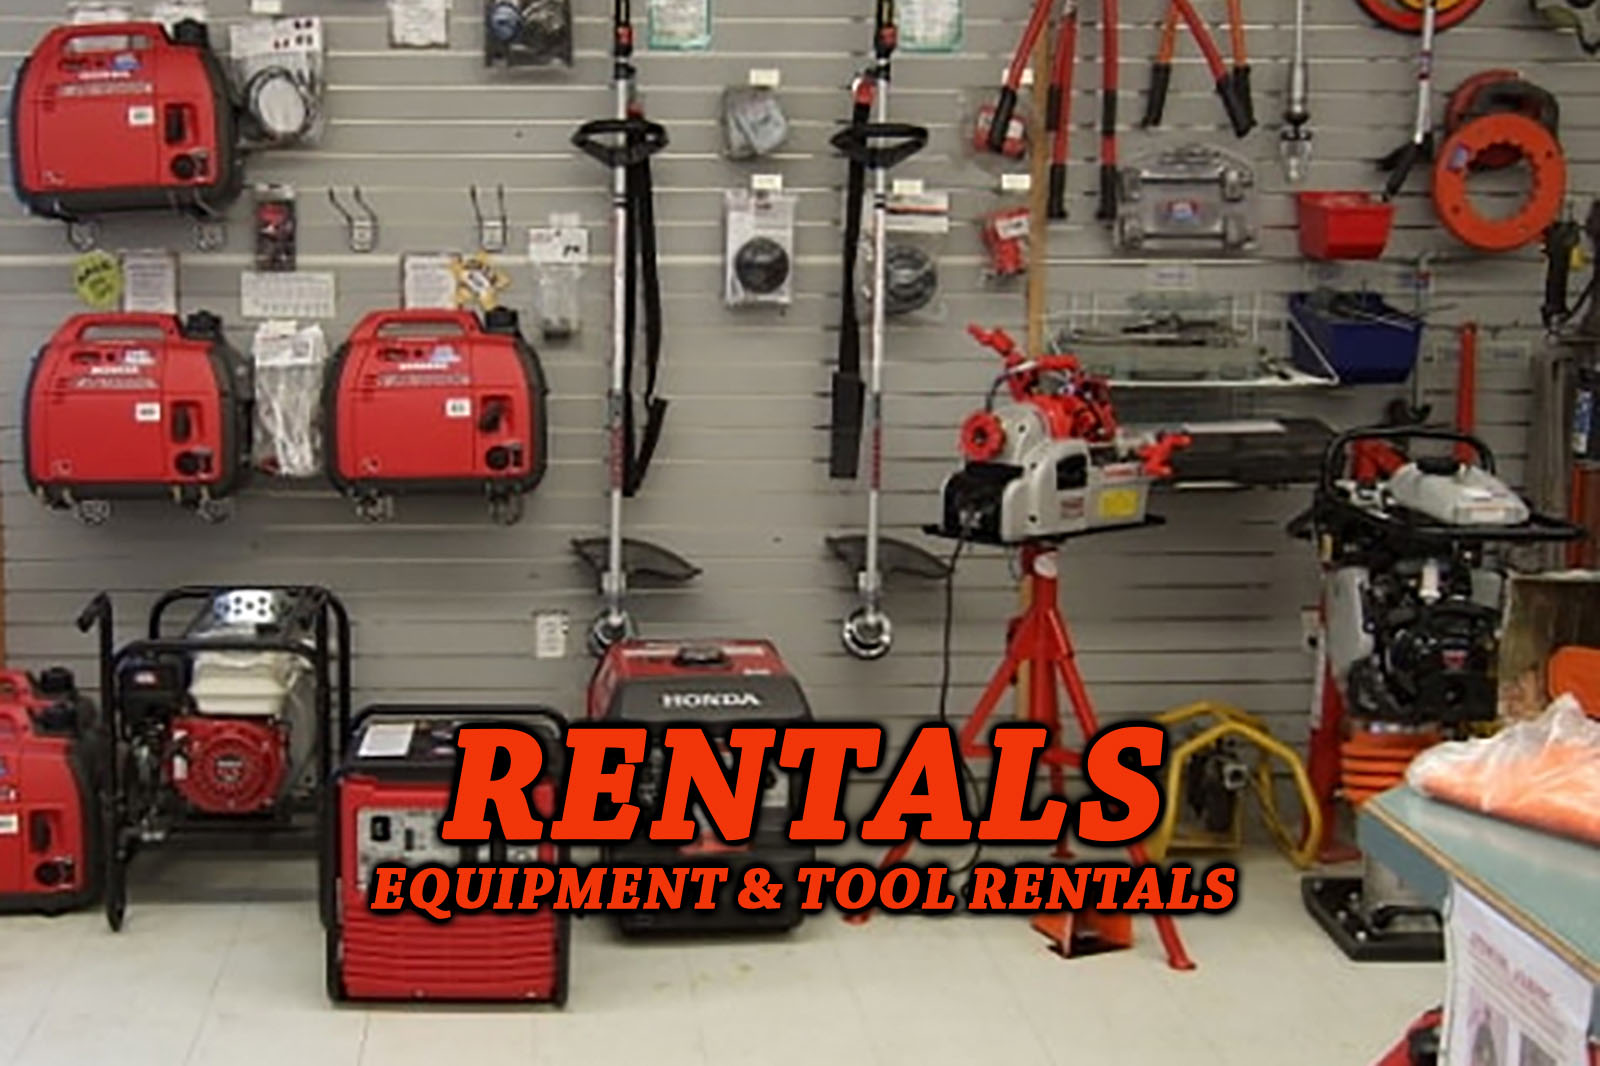 Equipment and Tool Rentals